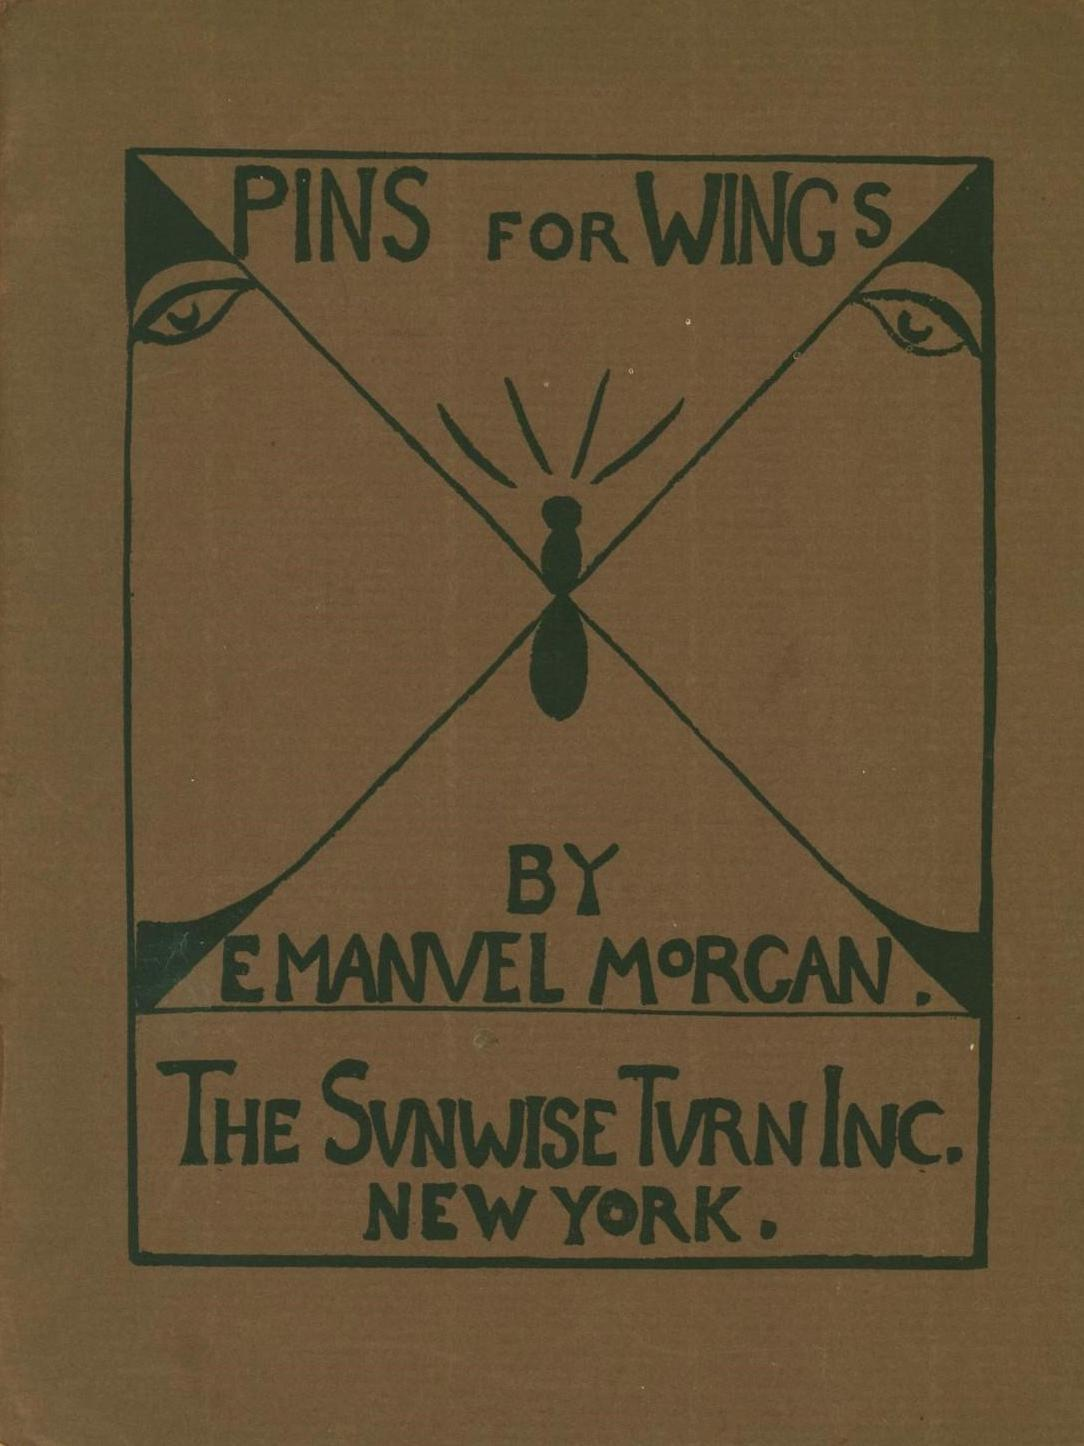 Witter Bynner (Emmanuel Morgan), Pins for Wings, Caricatures by Ivan Opffer and William Saphier, New York: The Sunrise Turn, Inc., 1920